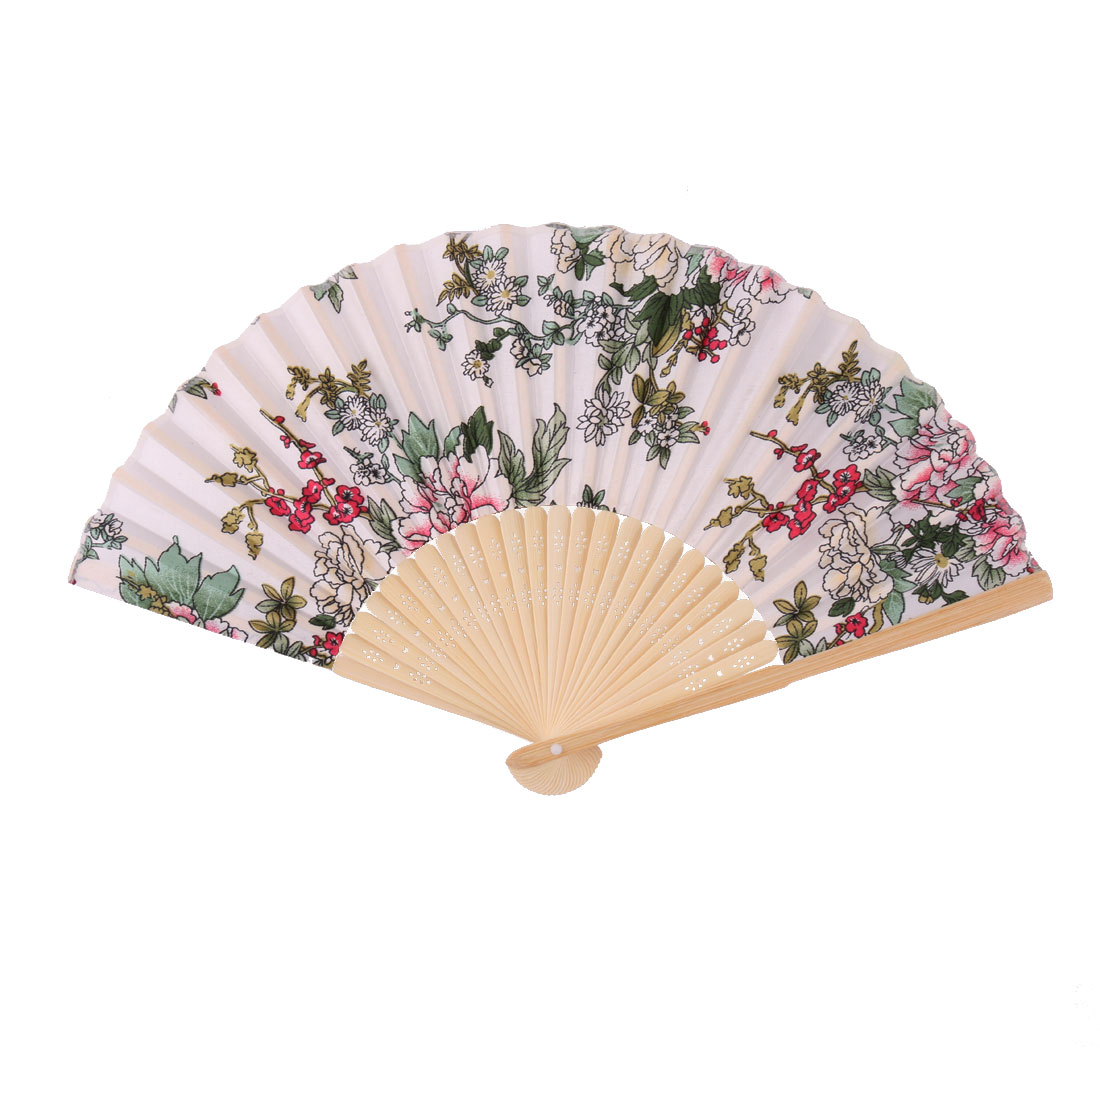 Wedding Party Bamboo Frame Flower Pattern Decorative Folding Dancing Hand Fan Colorful